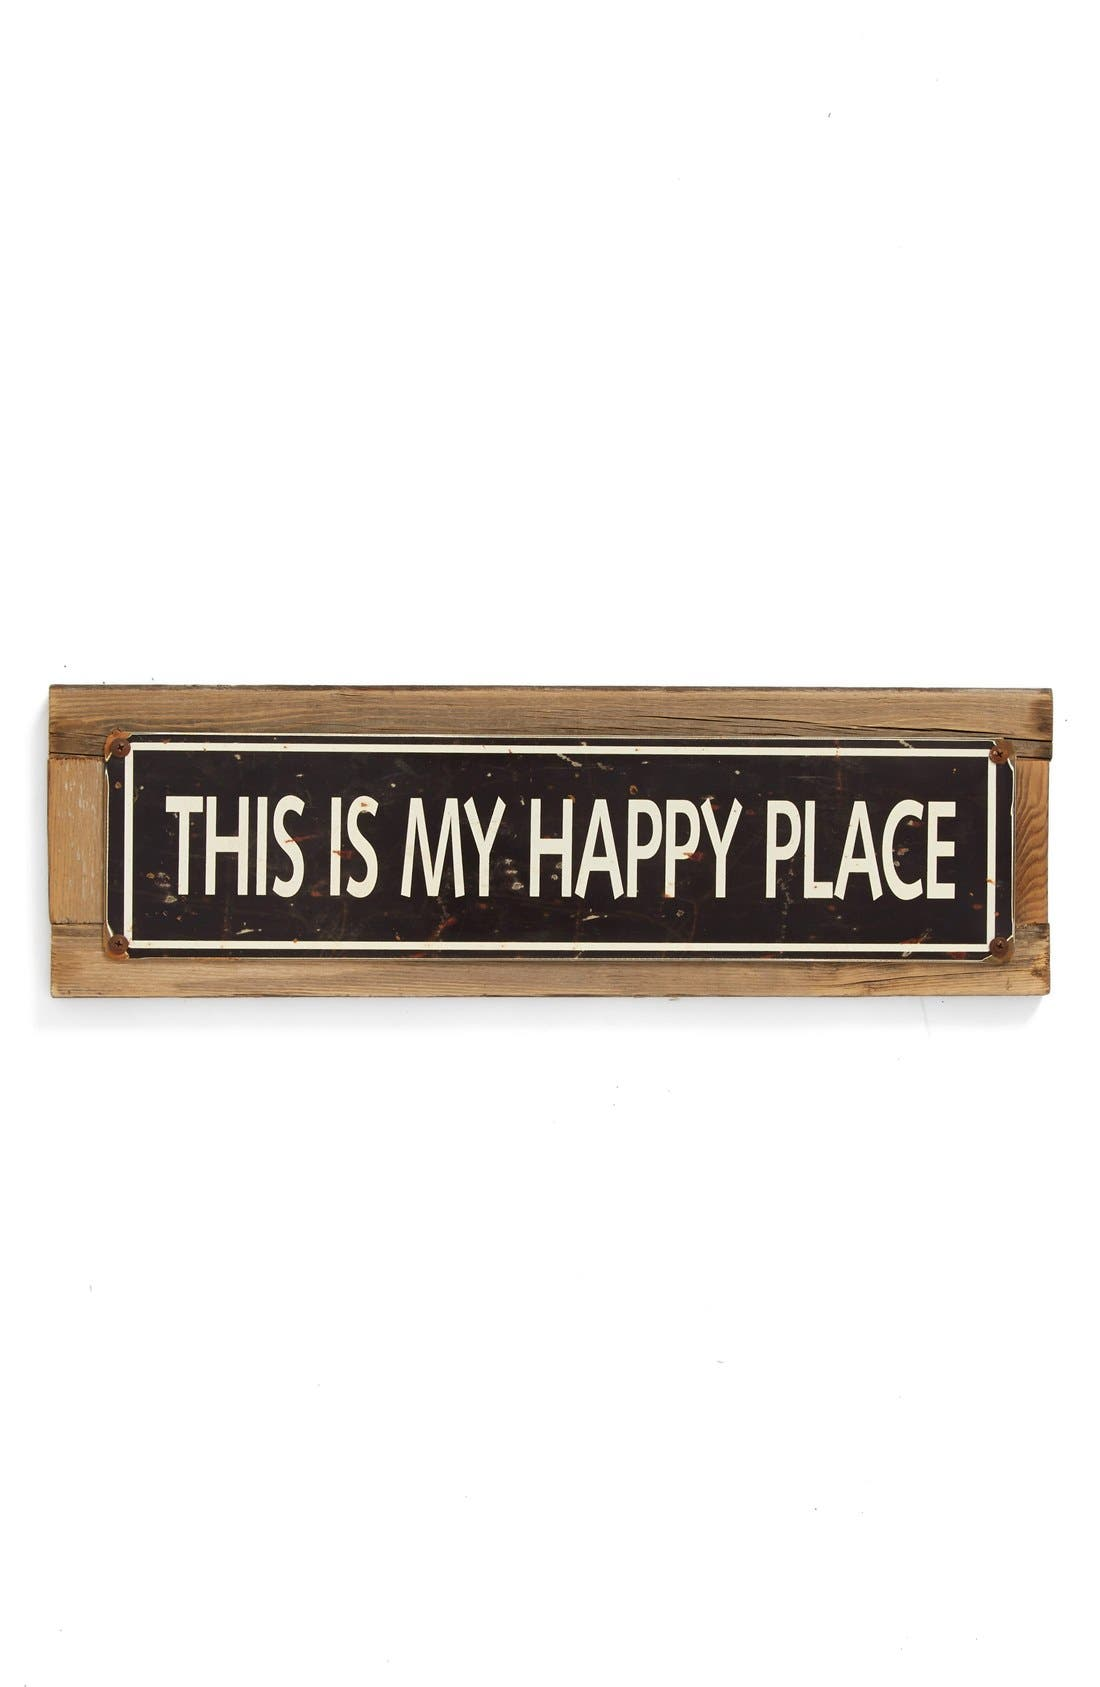 Poncho & Goldstein 'This Is My Happy Place' Sign